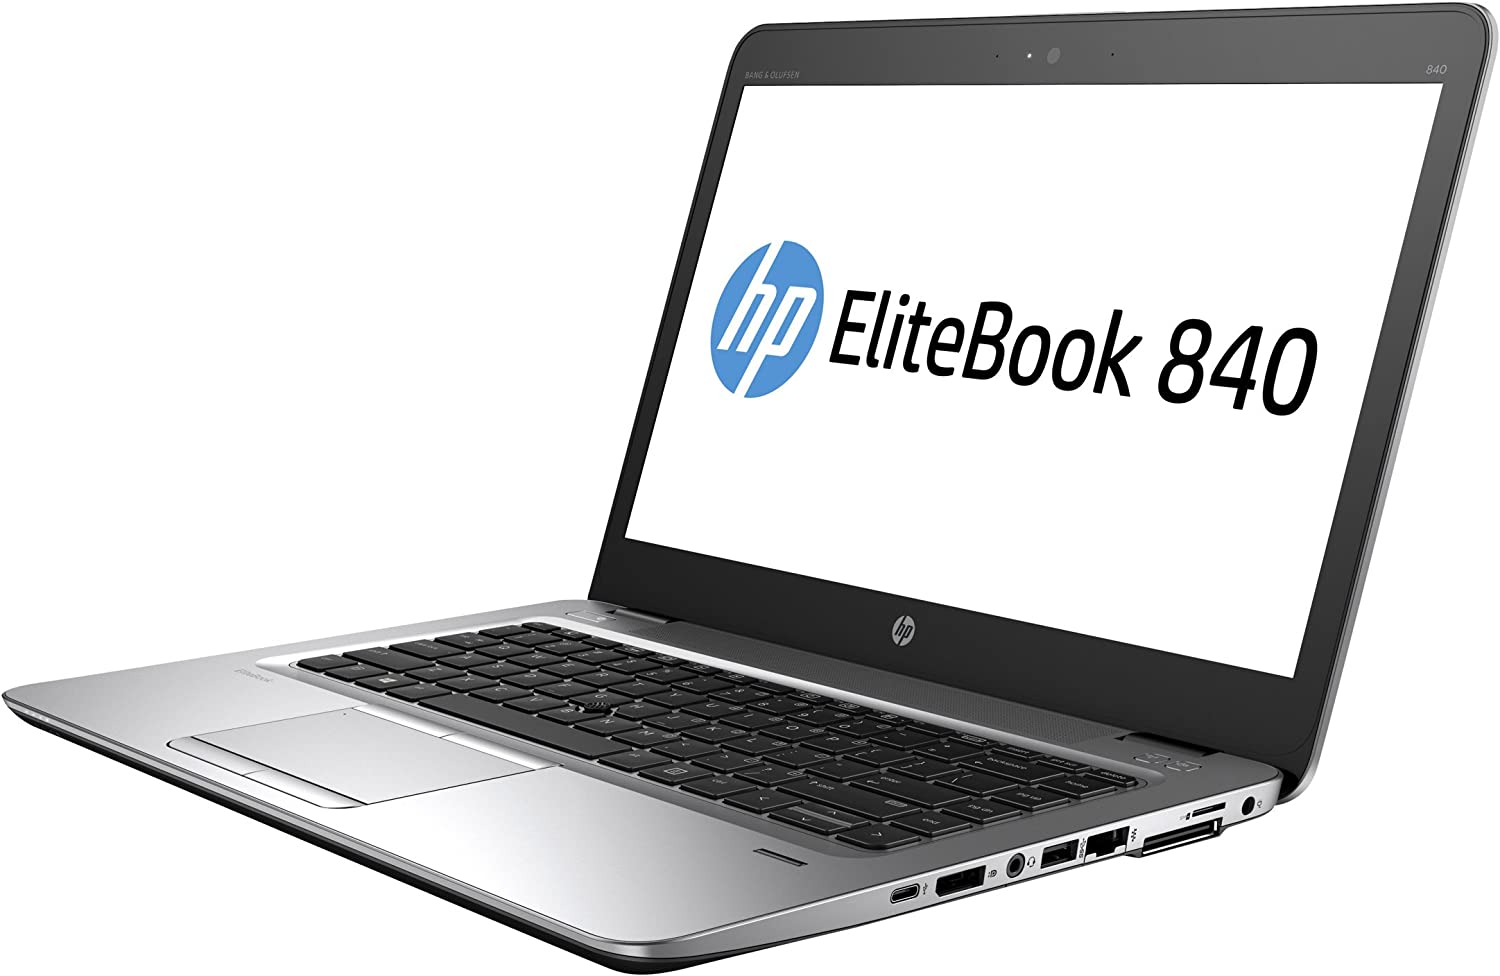 "HP Elitebook 840 G4 14"" Notebook, Windows, Intel Core i5 2.5 GHz, 8 GB RAM, 256 GB SSD, Silver (1GE41UT#ABA)"